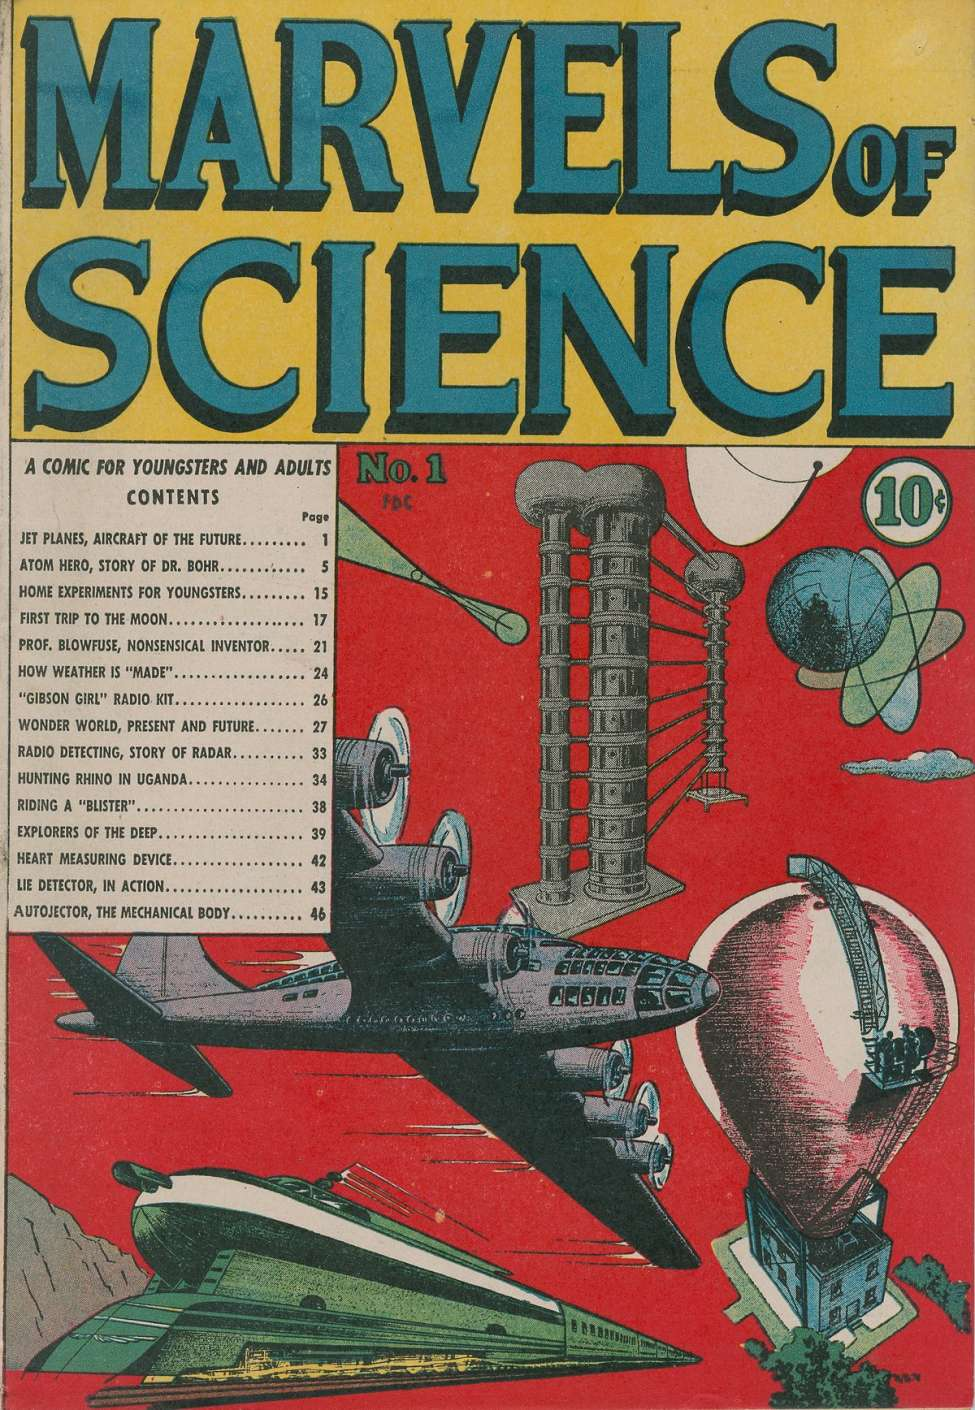 Comic Book Cover For Marvels of Science #1